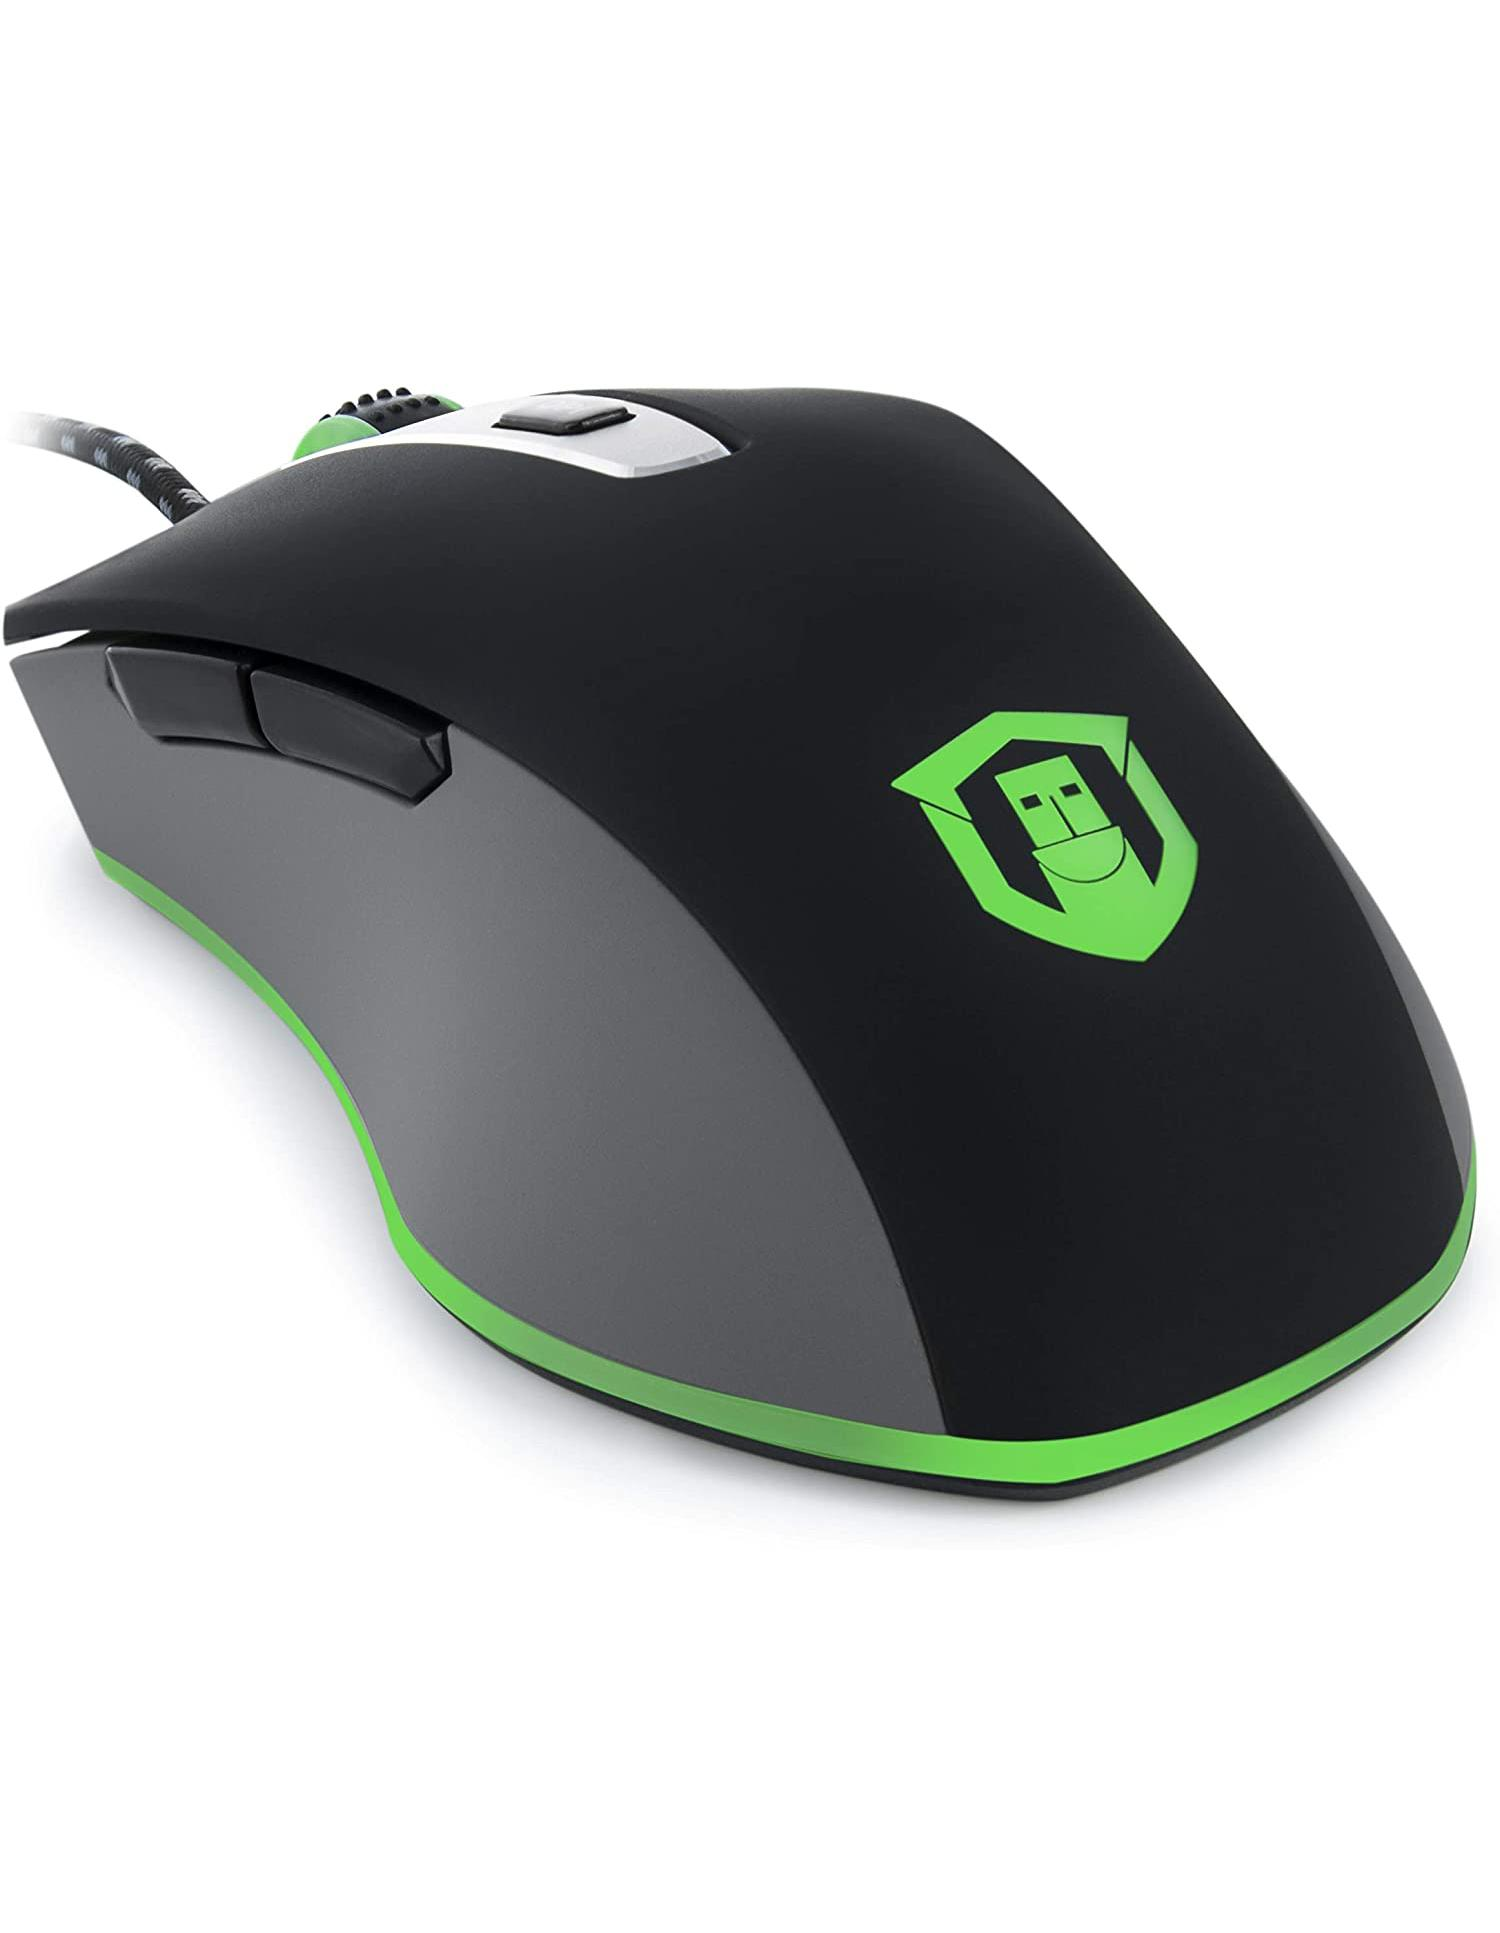 Plugable's precision gaming mouse